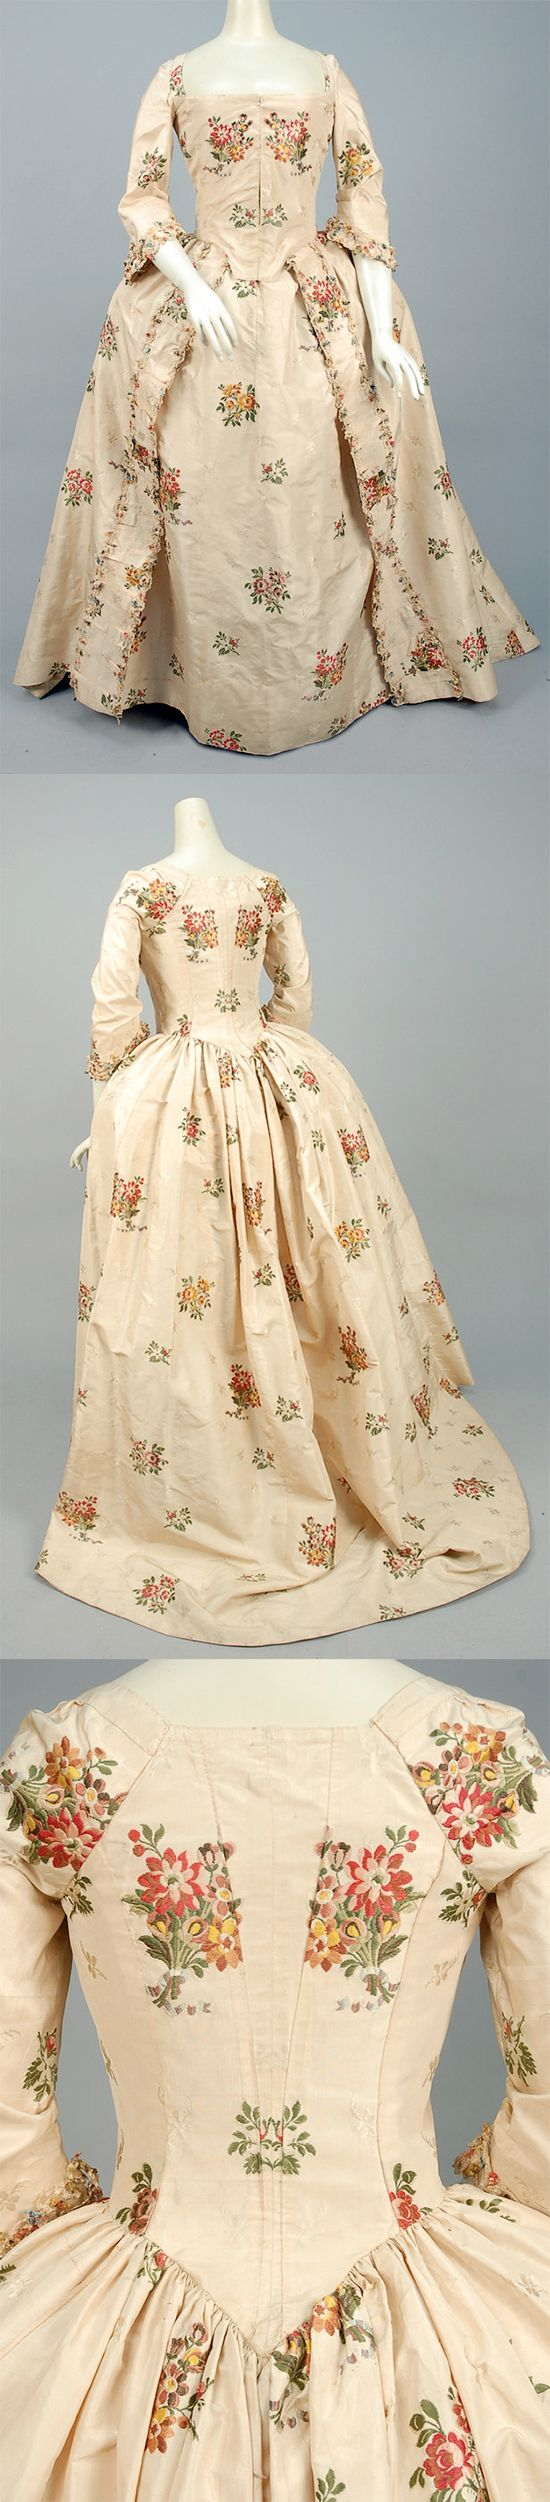 SILK BROCADE ROBE a L'ANGLAISE, CANADIAN, 1750 - 1775. Ivory silk brocaded with small tone on tone flowers and larger polychrome floral clusters, semi boned bodice with square-cut neckline and elbow length sleeve, pleated cuff decorated with fancy cord and polychrome tassels, trained open skirt with cord-trimmed furbelows, matching petticoat, bodice lined in cotton and linen. | Whitaker Auctions